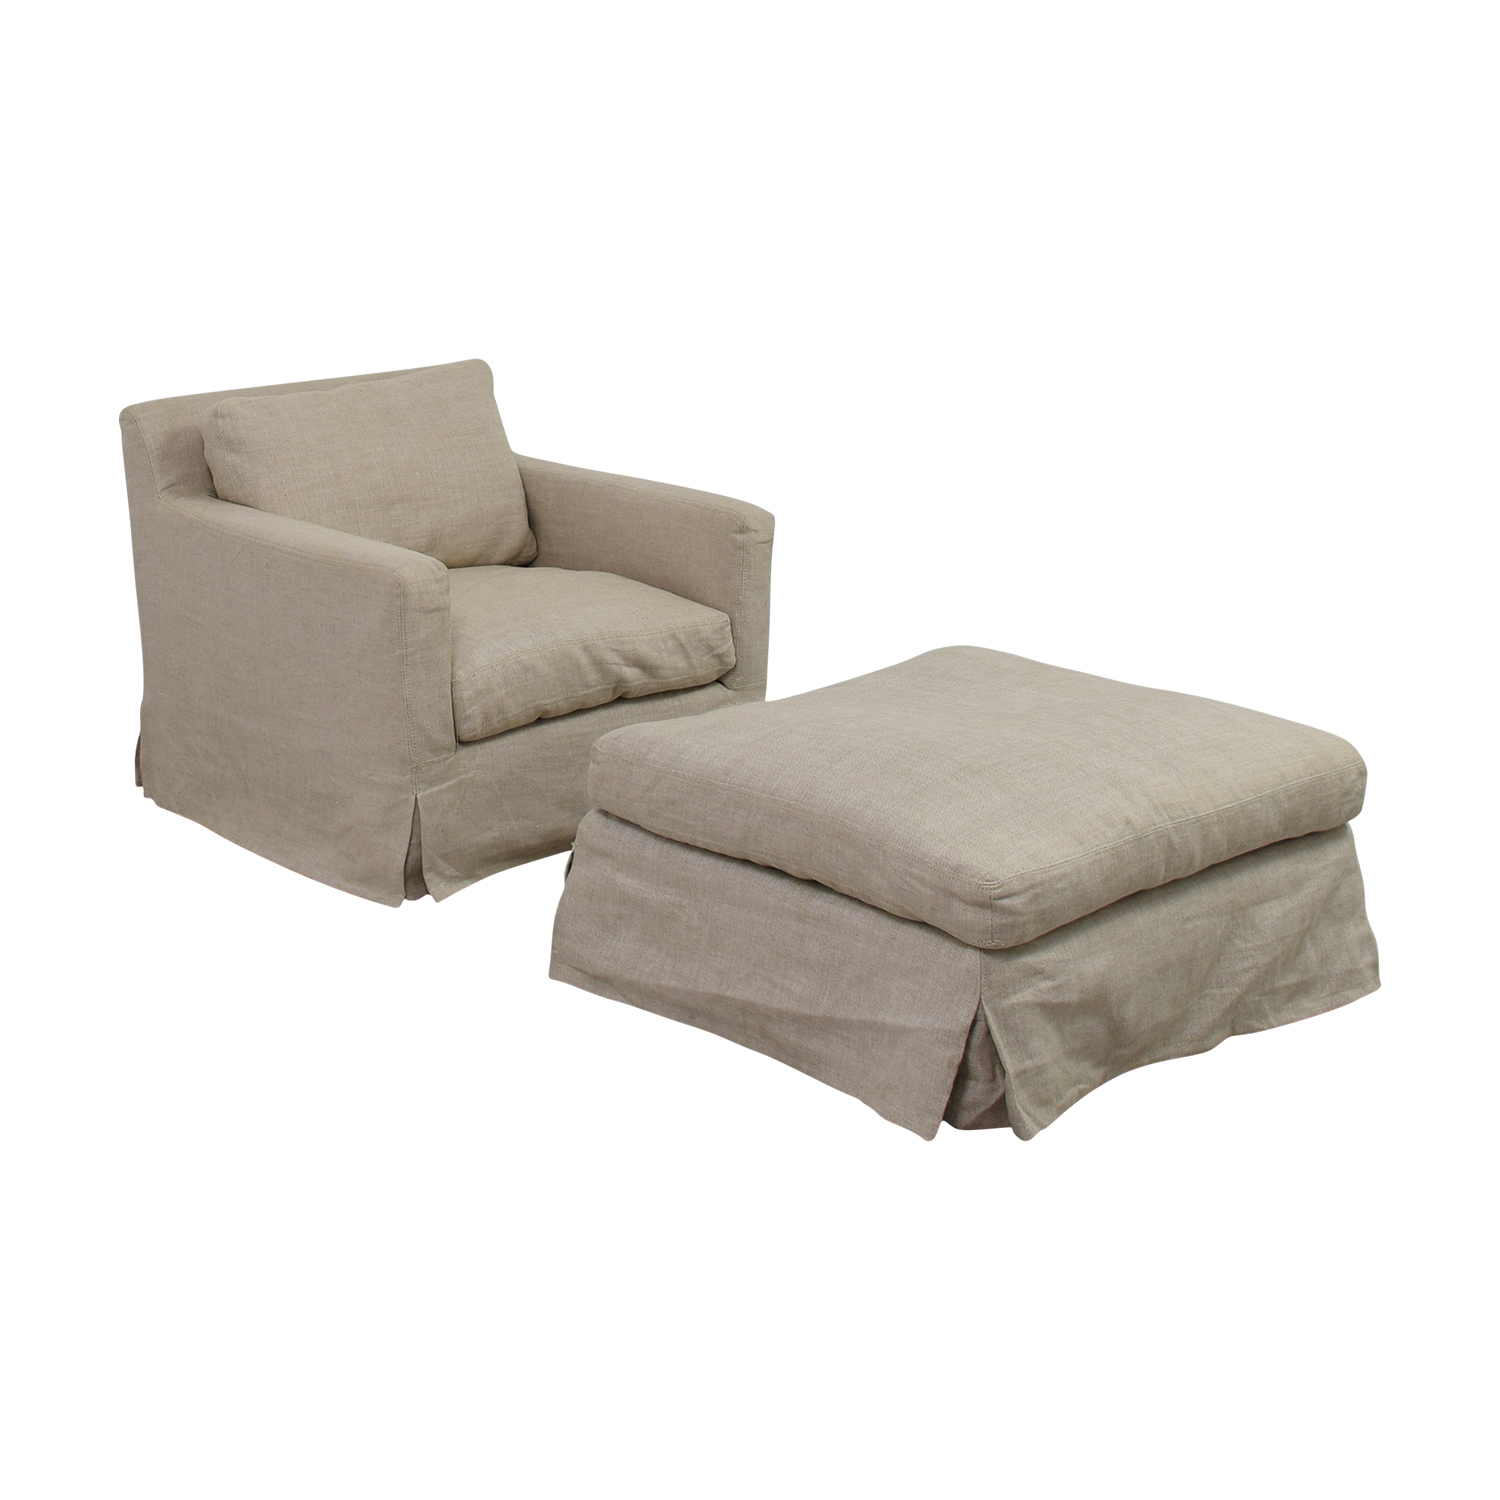 buy Restoration Hardware Beige Slipcovered Belgian Track Arm Chair and Ottoman Restoration Hardware Accent Chairs